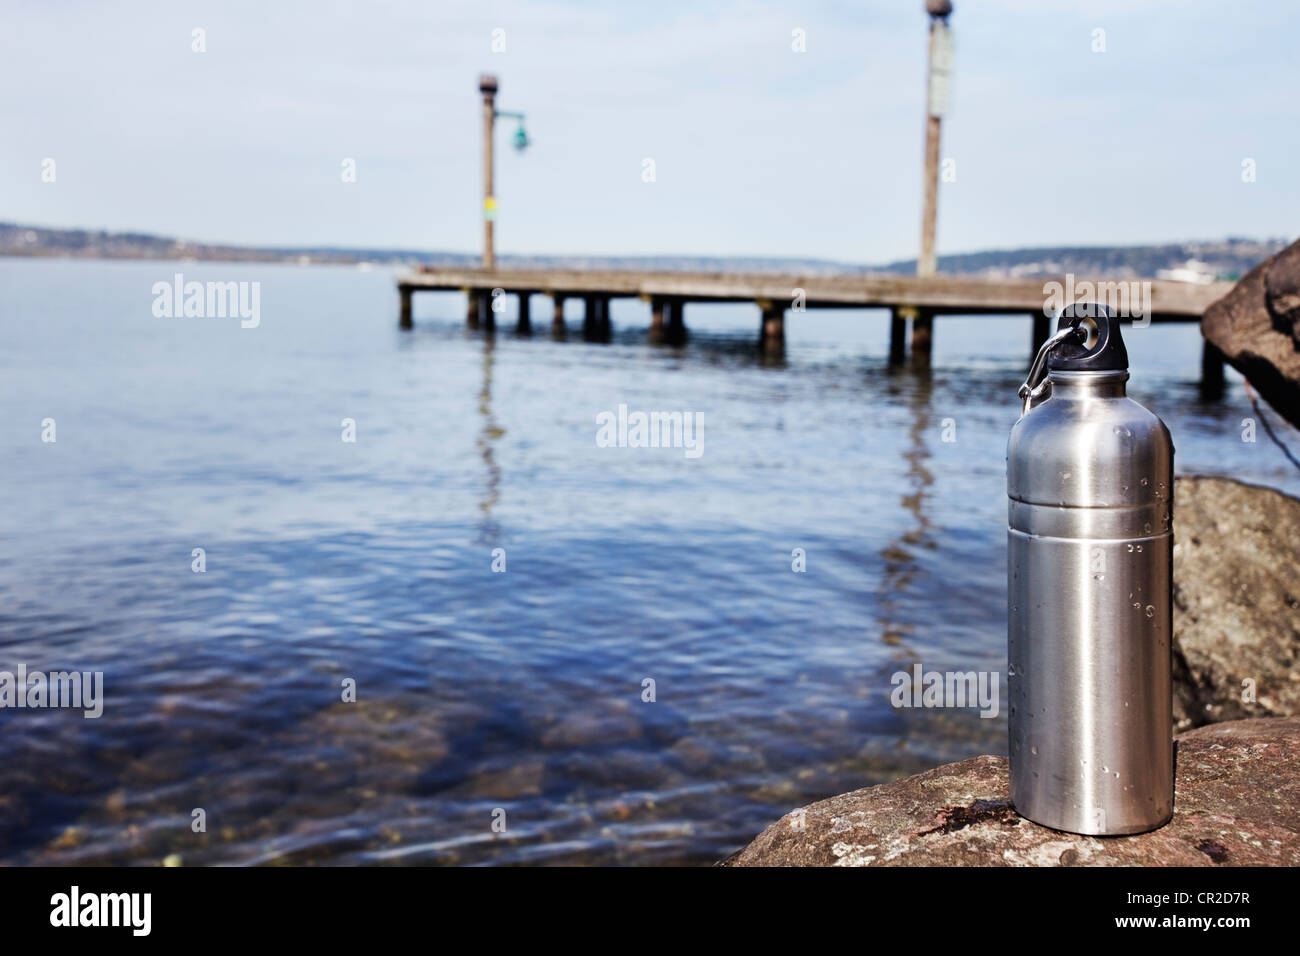 Reusable water bottle sitting by a clean lake - Stock Image